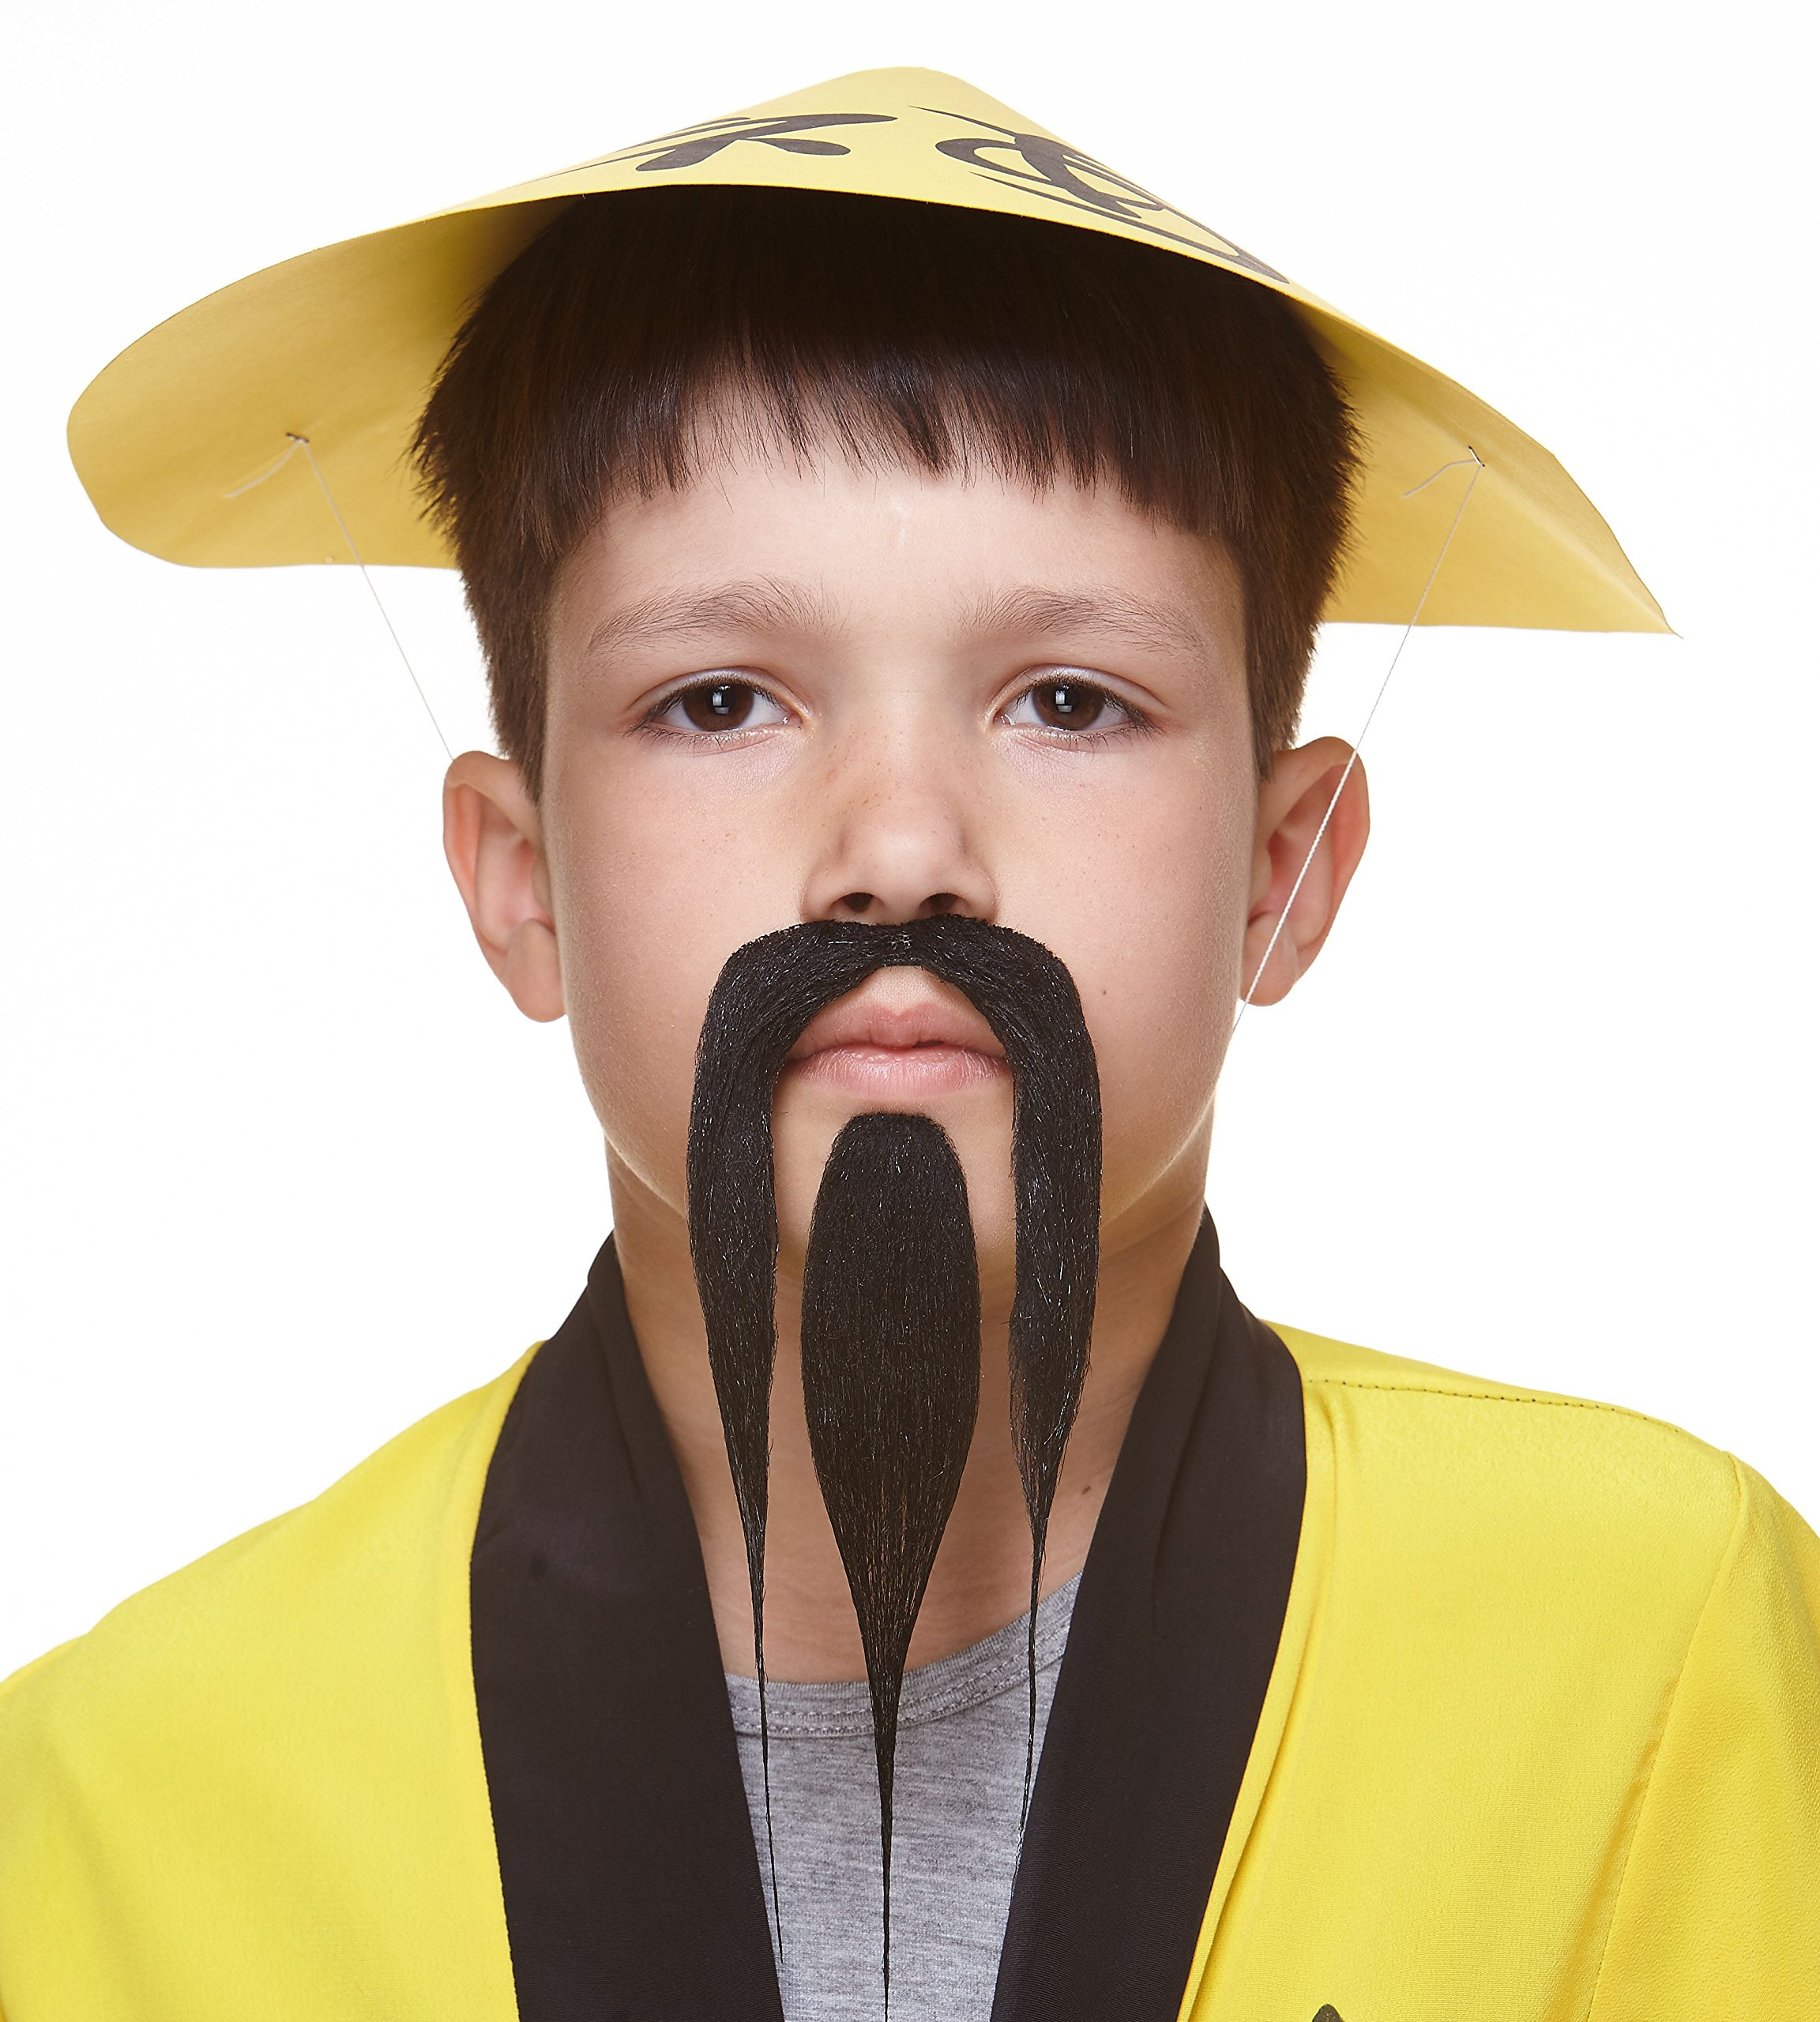 Mustaches Self Adhesive, Novelty, Fake, Small Shaolin Beard and, Black Color